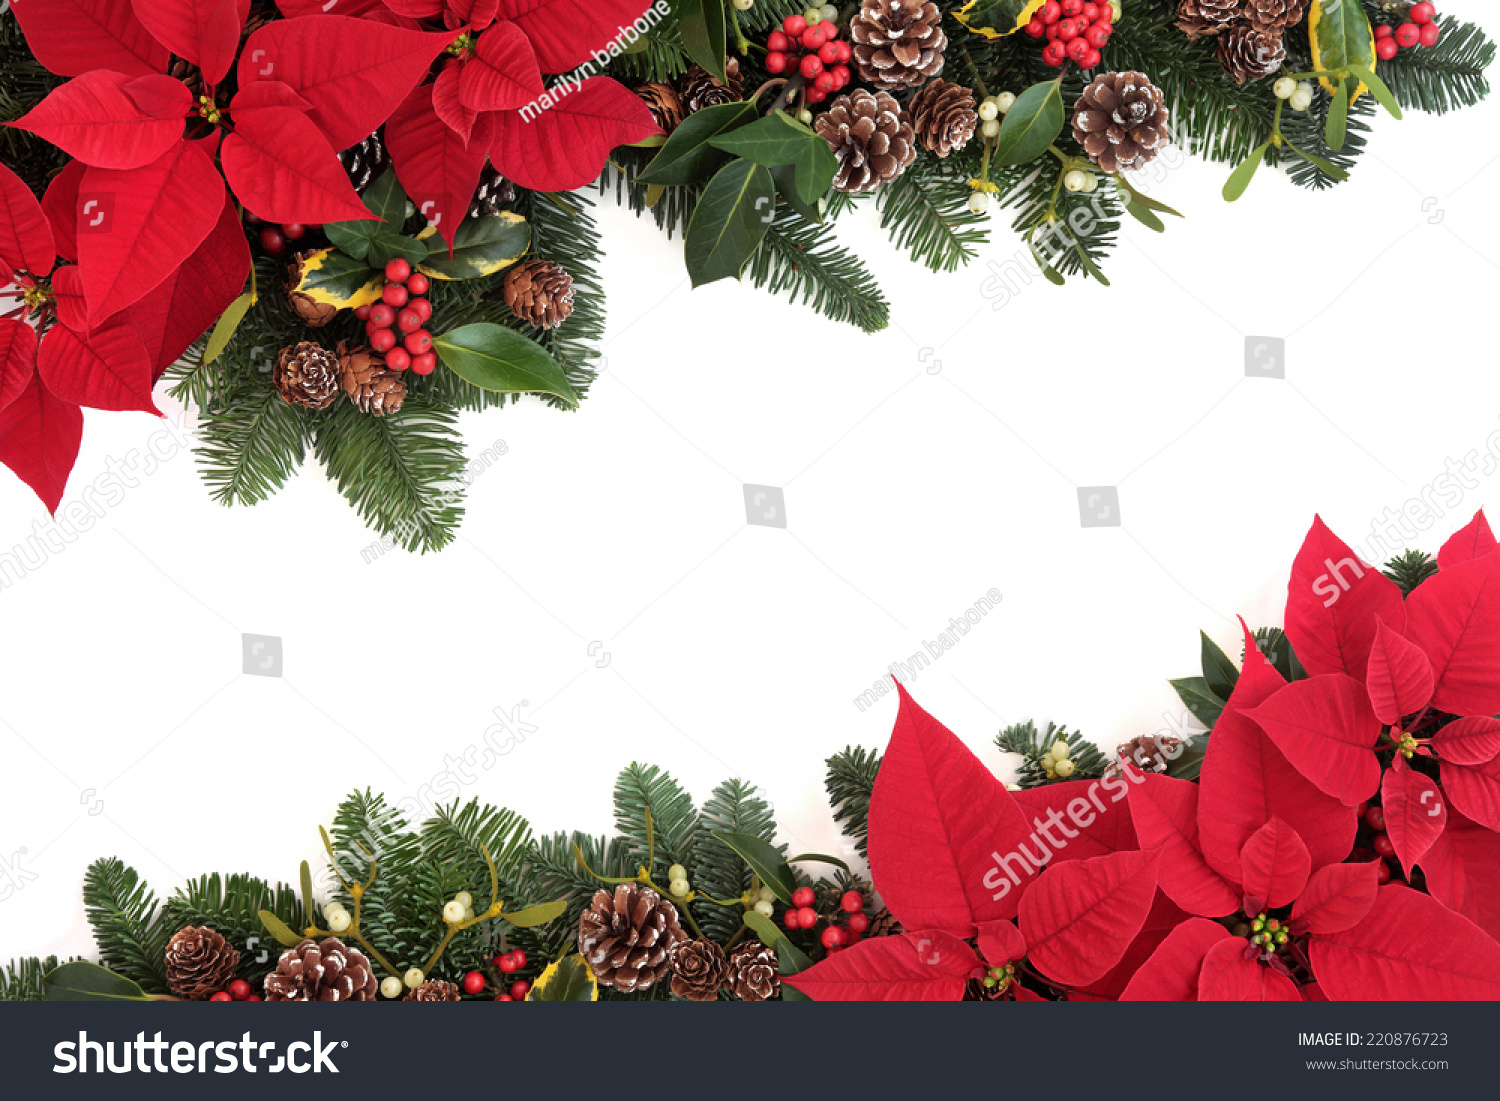 christmas poinsettia flower background border with holly ivy mistletoe pine cones and fir